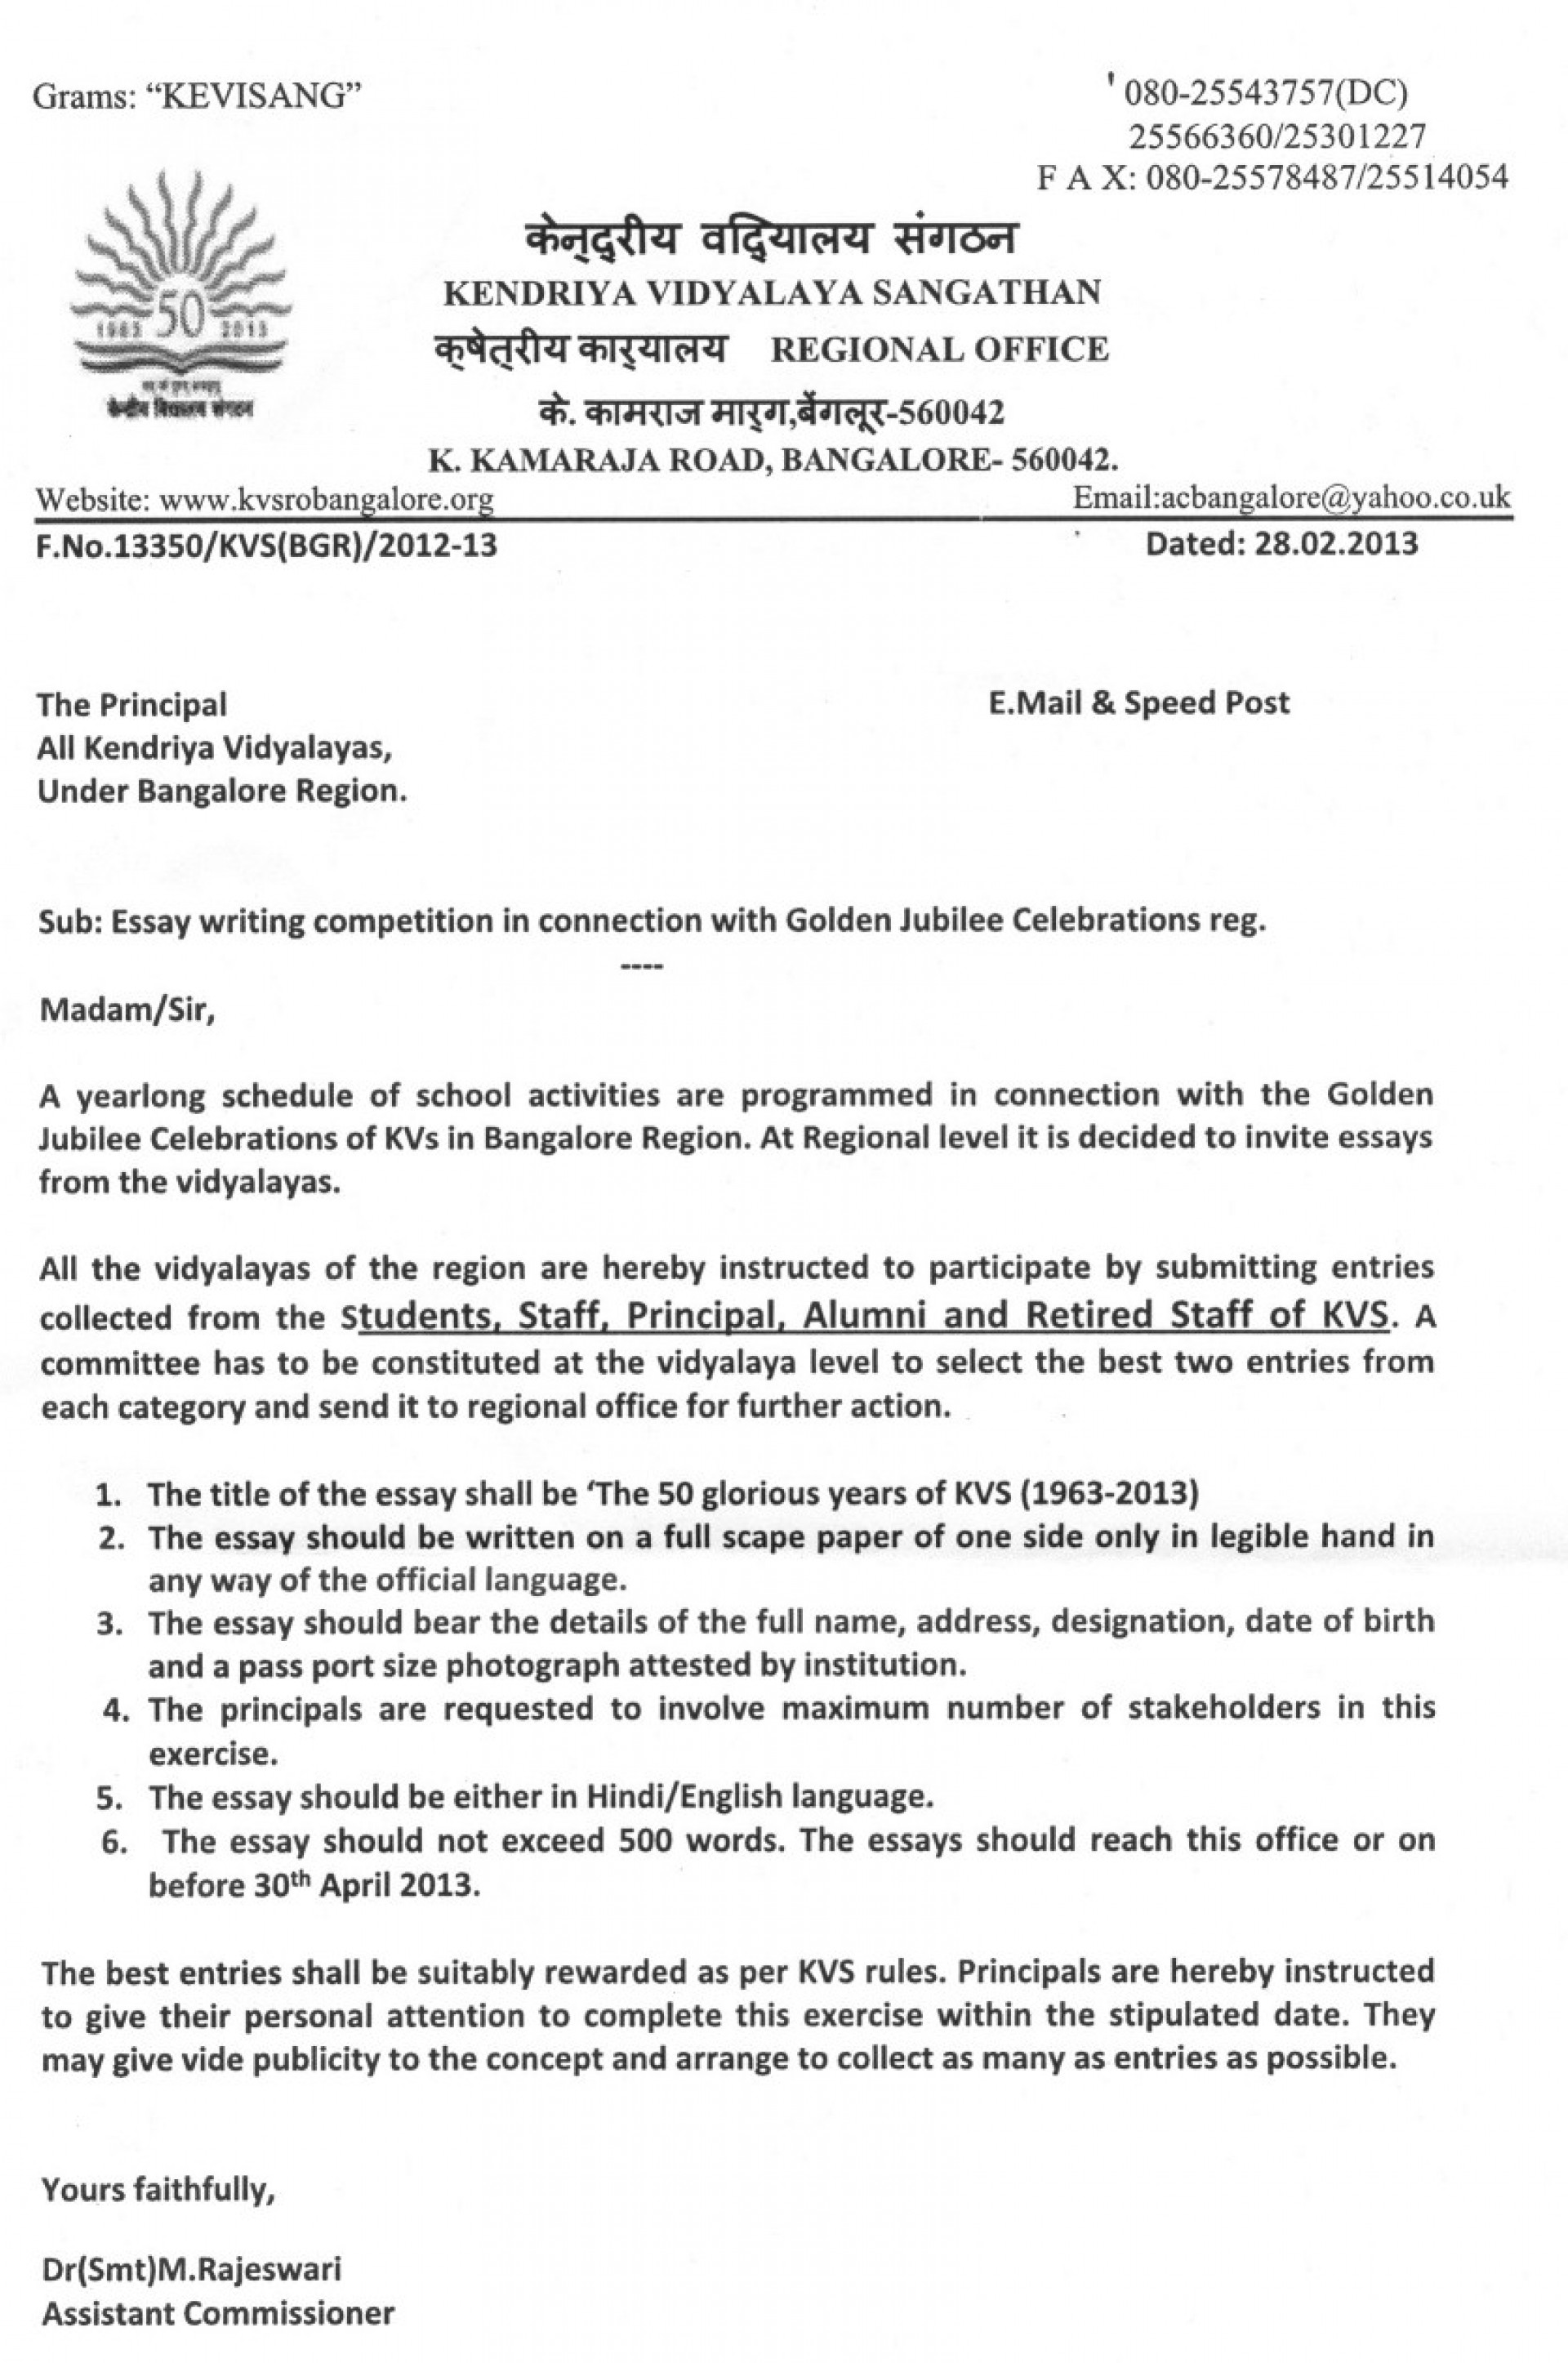 012 Essay Example On Principal Of School Writing Competition For Golden Ju College Admission Format Heading Application Contests Stunning Students 2019 In India International 2017 1920